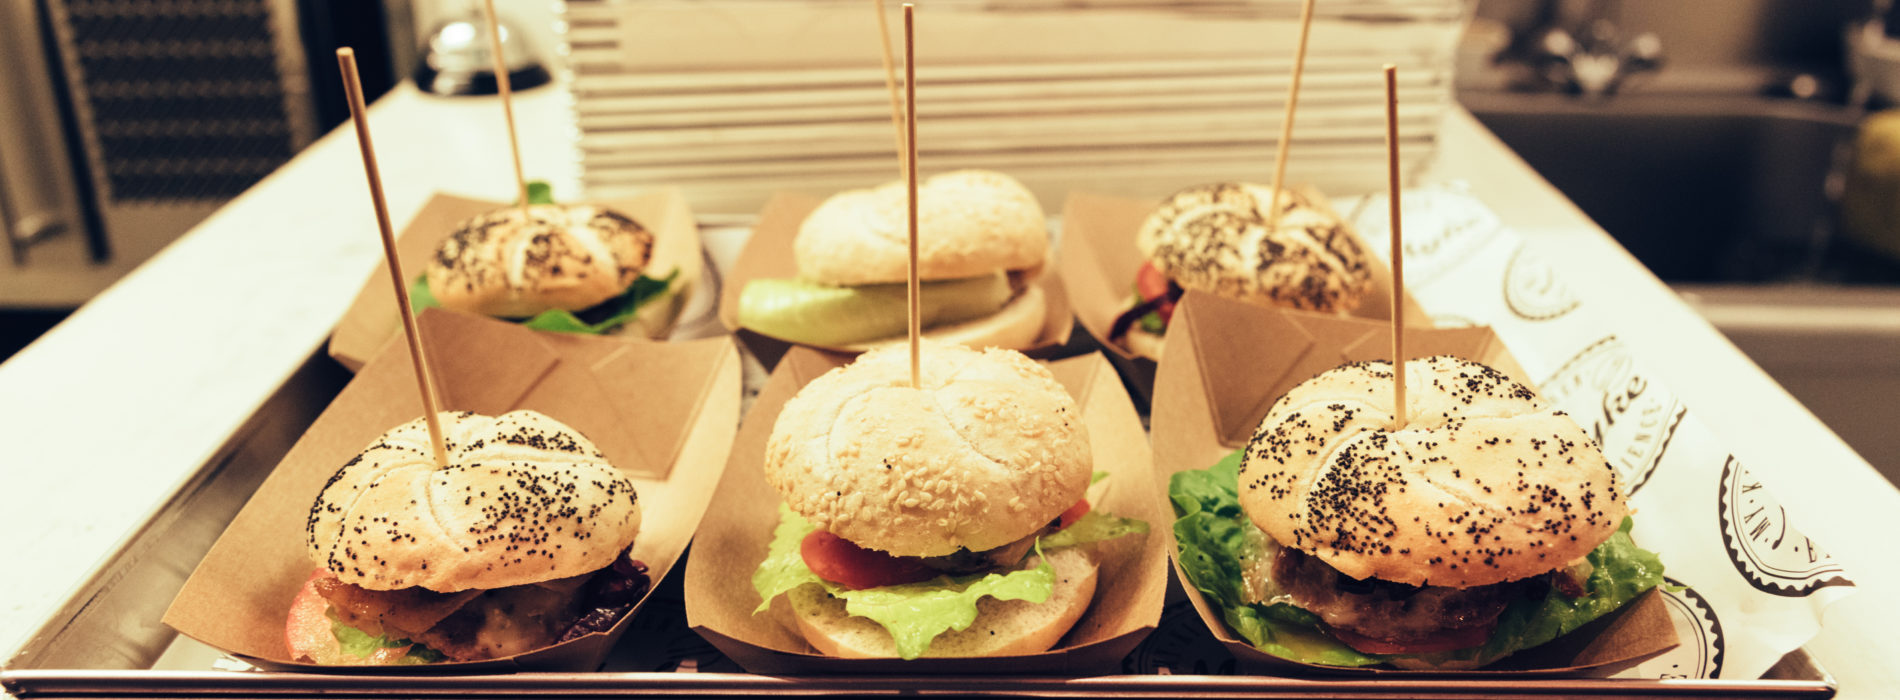 Fish and Burger Bar Milano, l'hamburgeria Myke arriva all'Isola